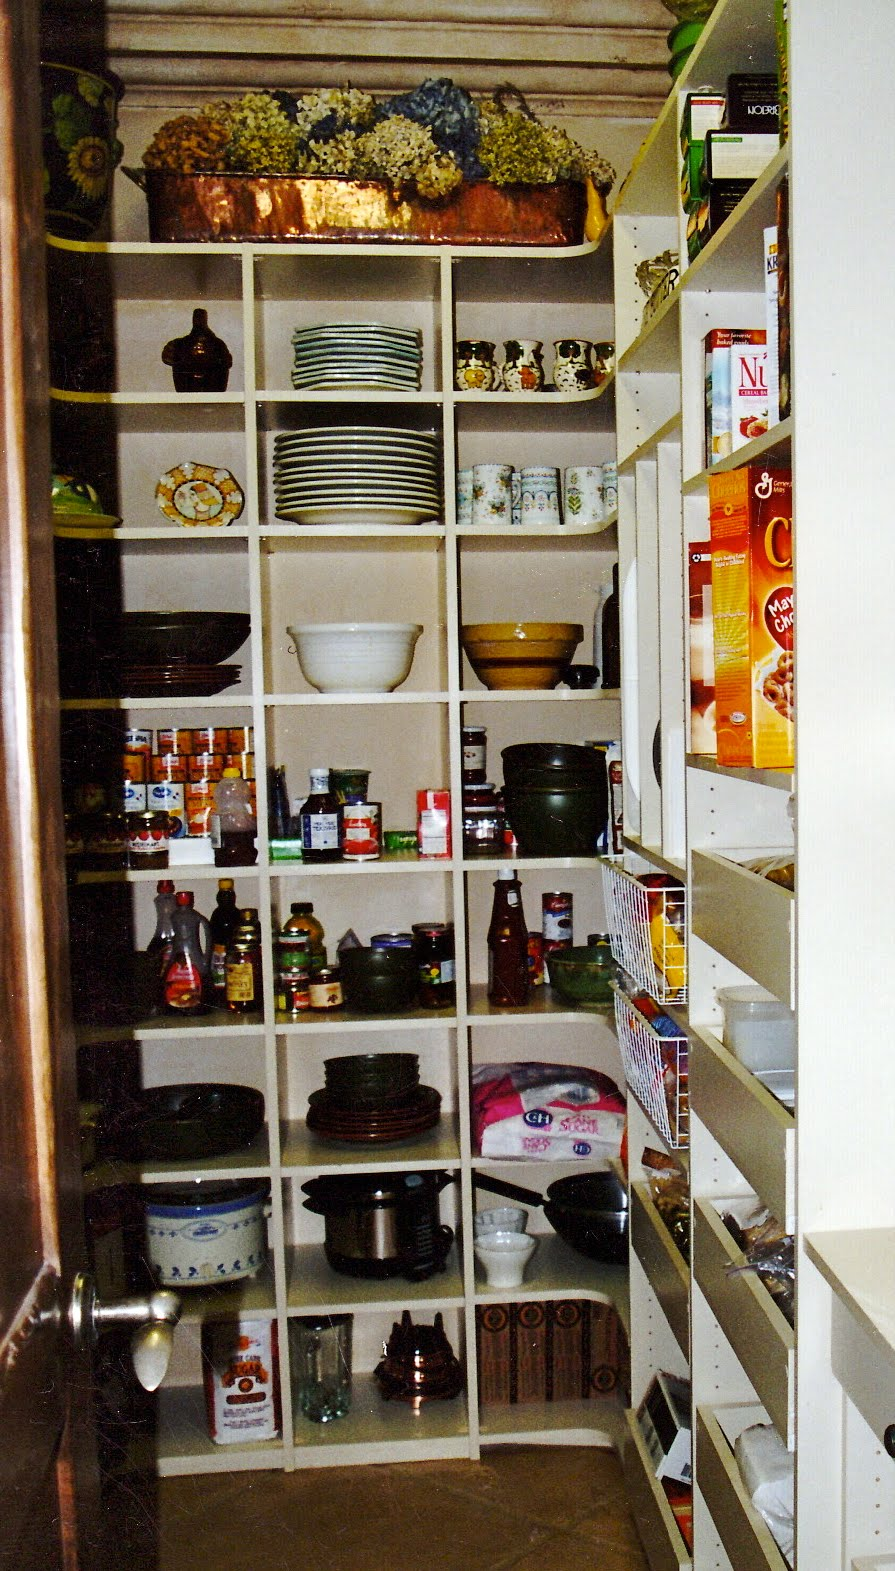 malka in the pantry pantry closet organizer